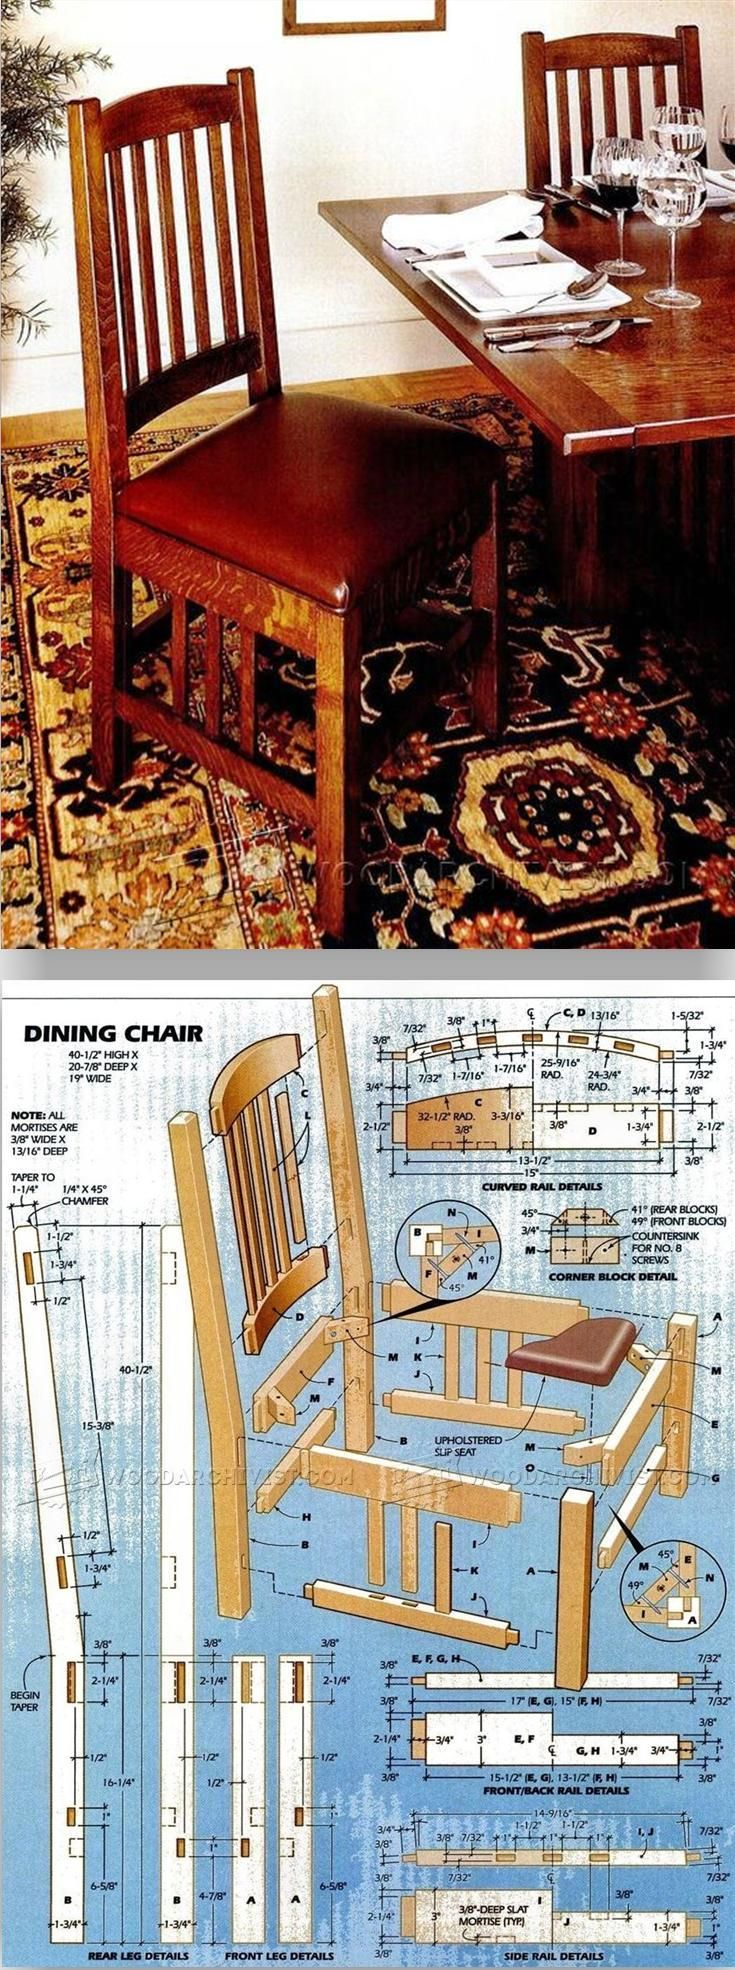 Morris chair plans - Dining Chair Plans Furniture Plans And Projects Woodarchivist Com